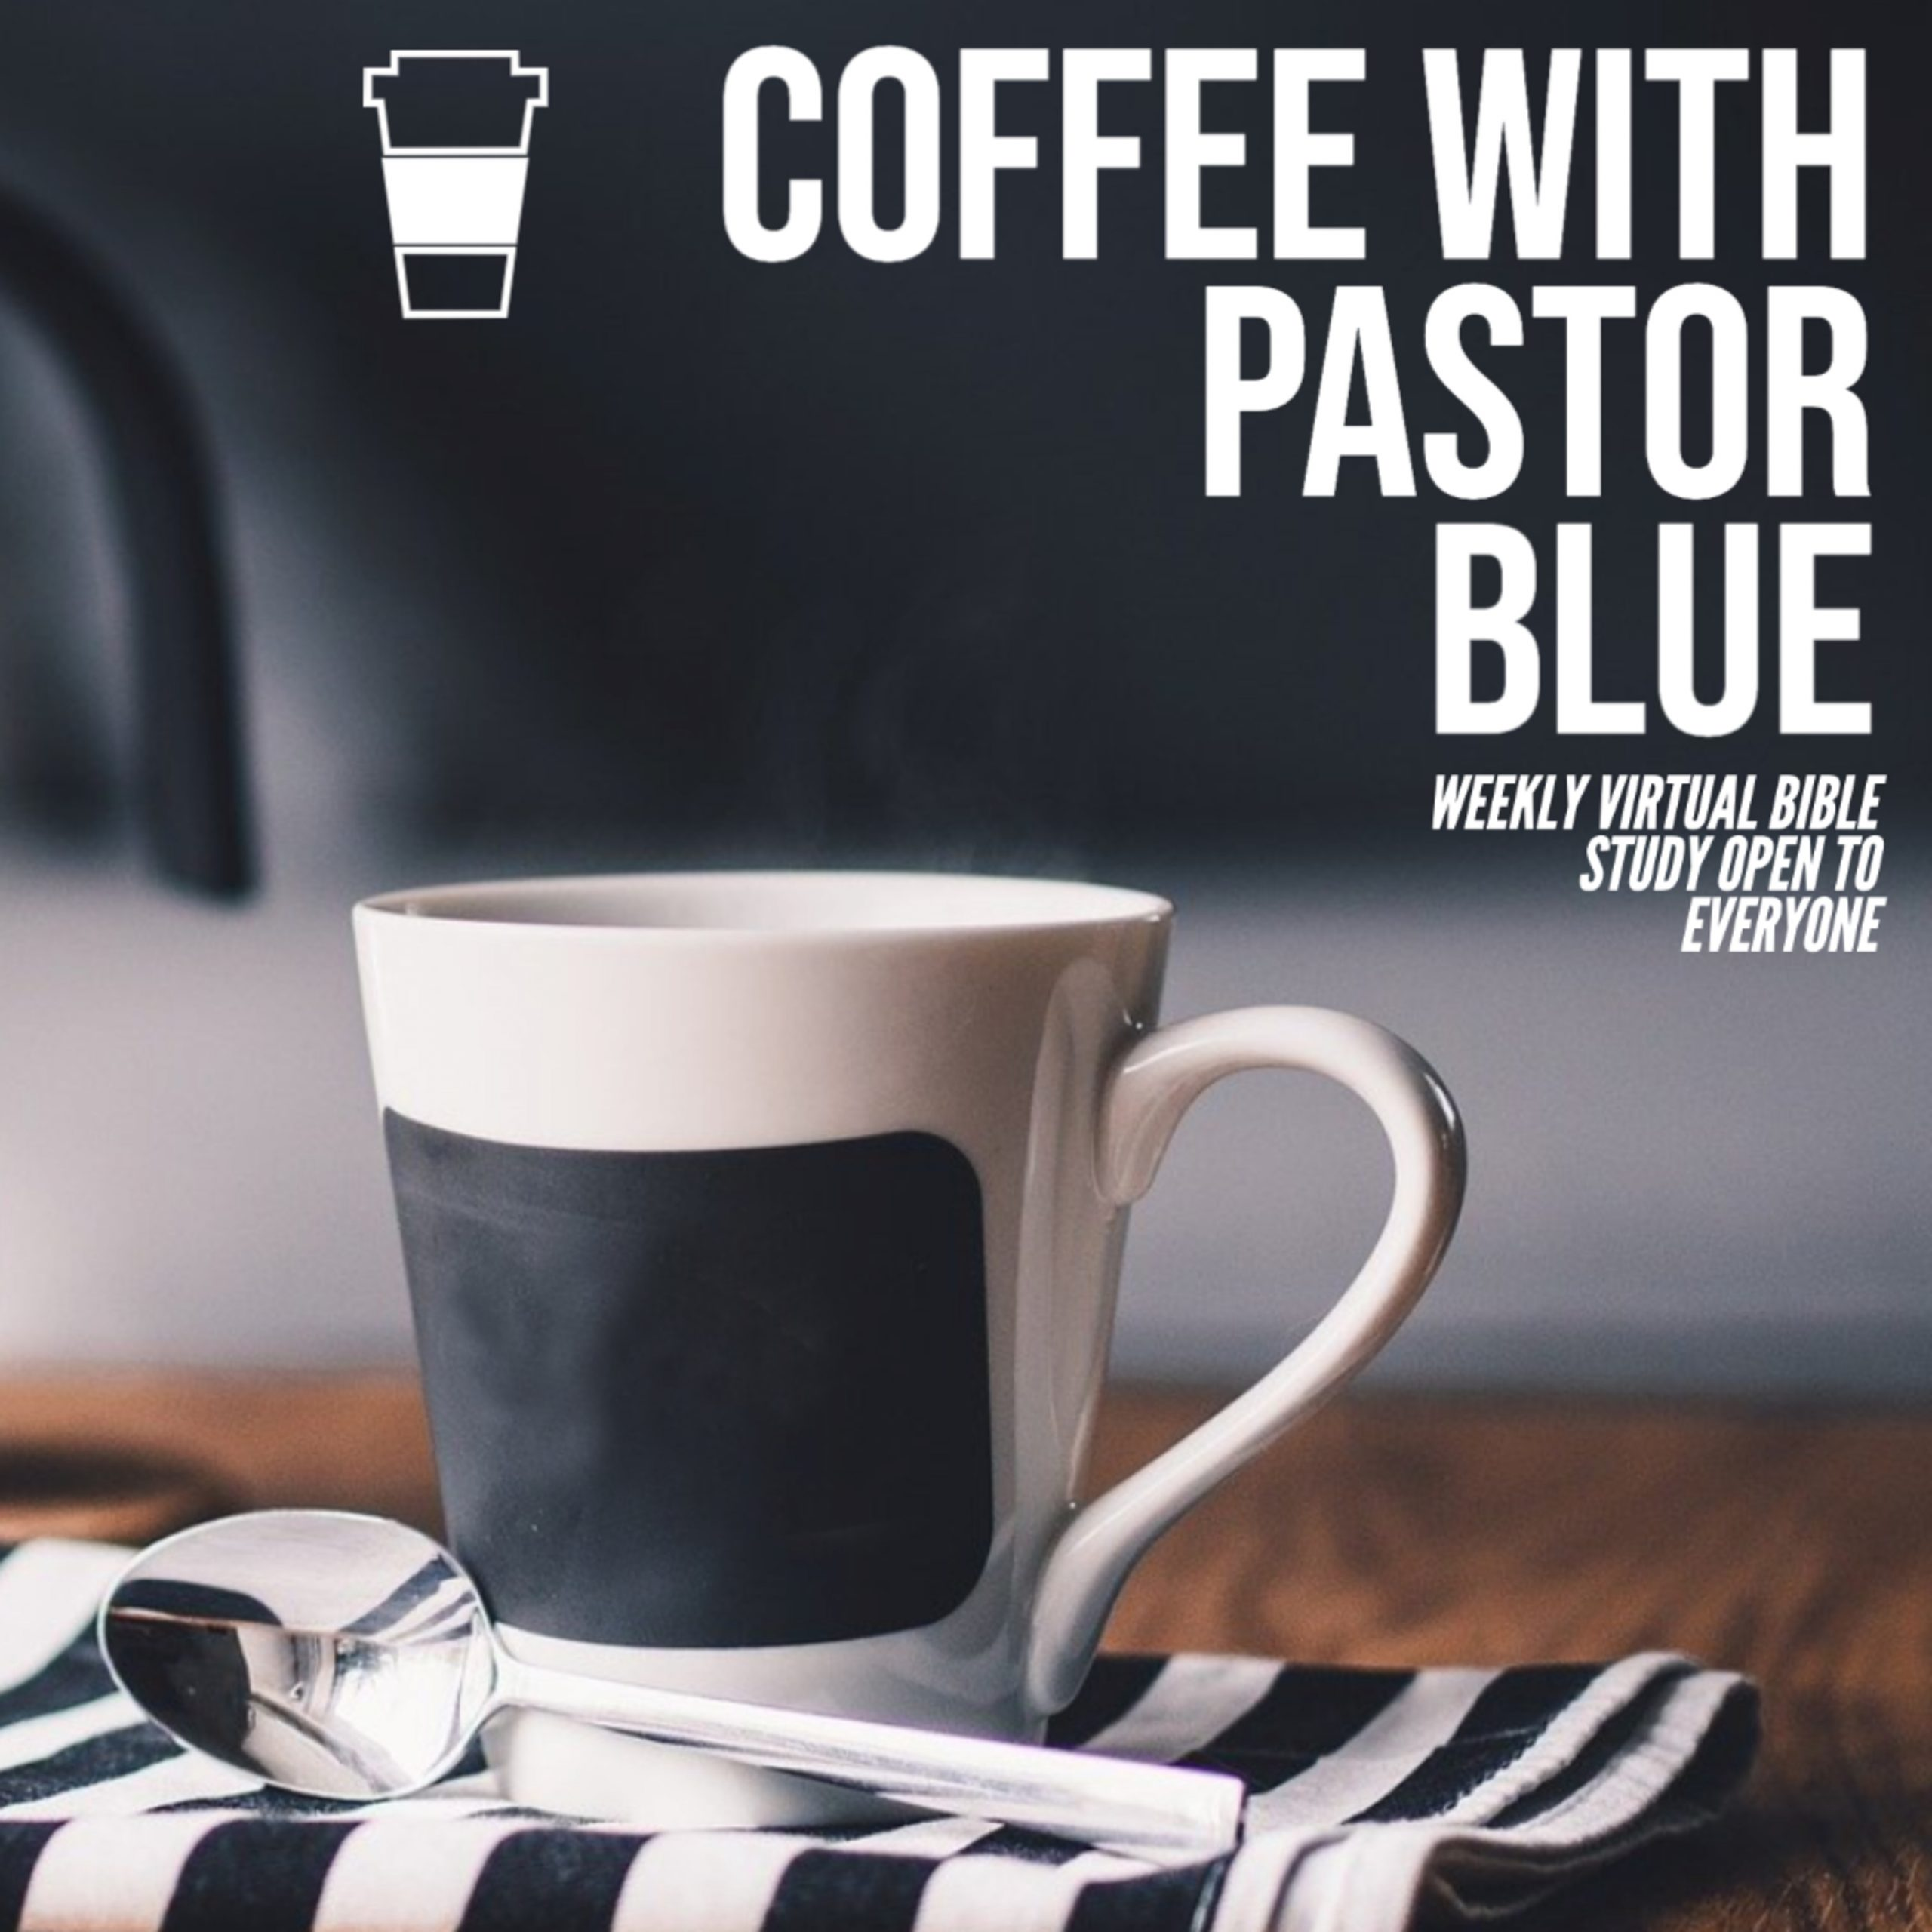 Coffee with the Pastor Episode 2: Spiritual Disciplines